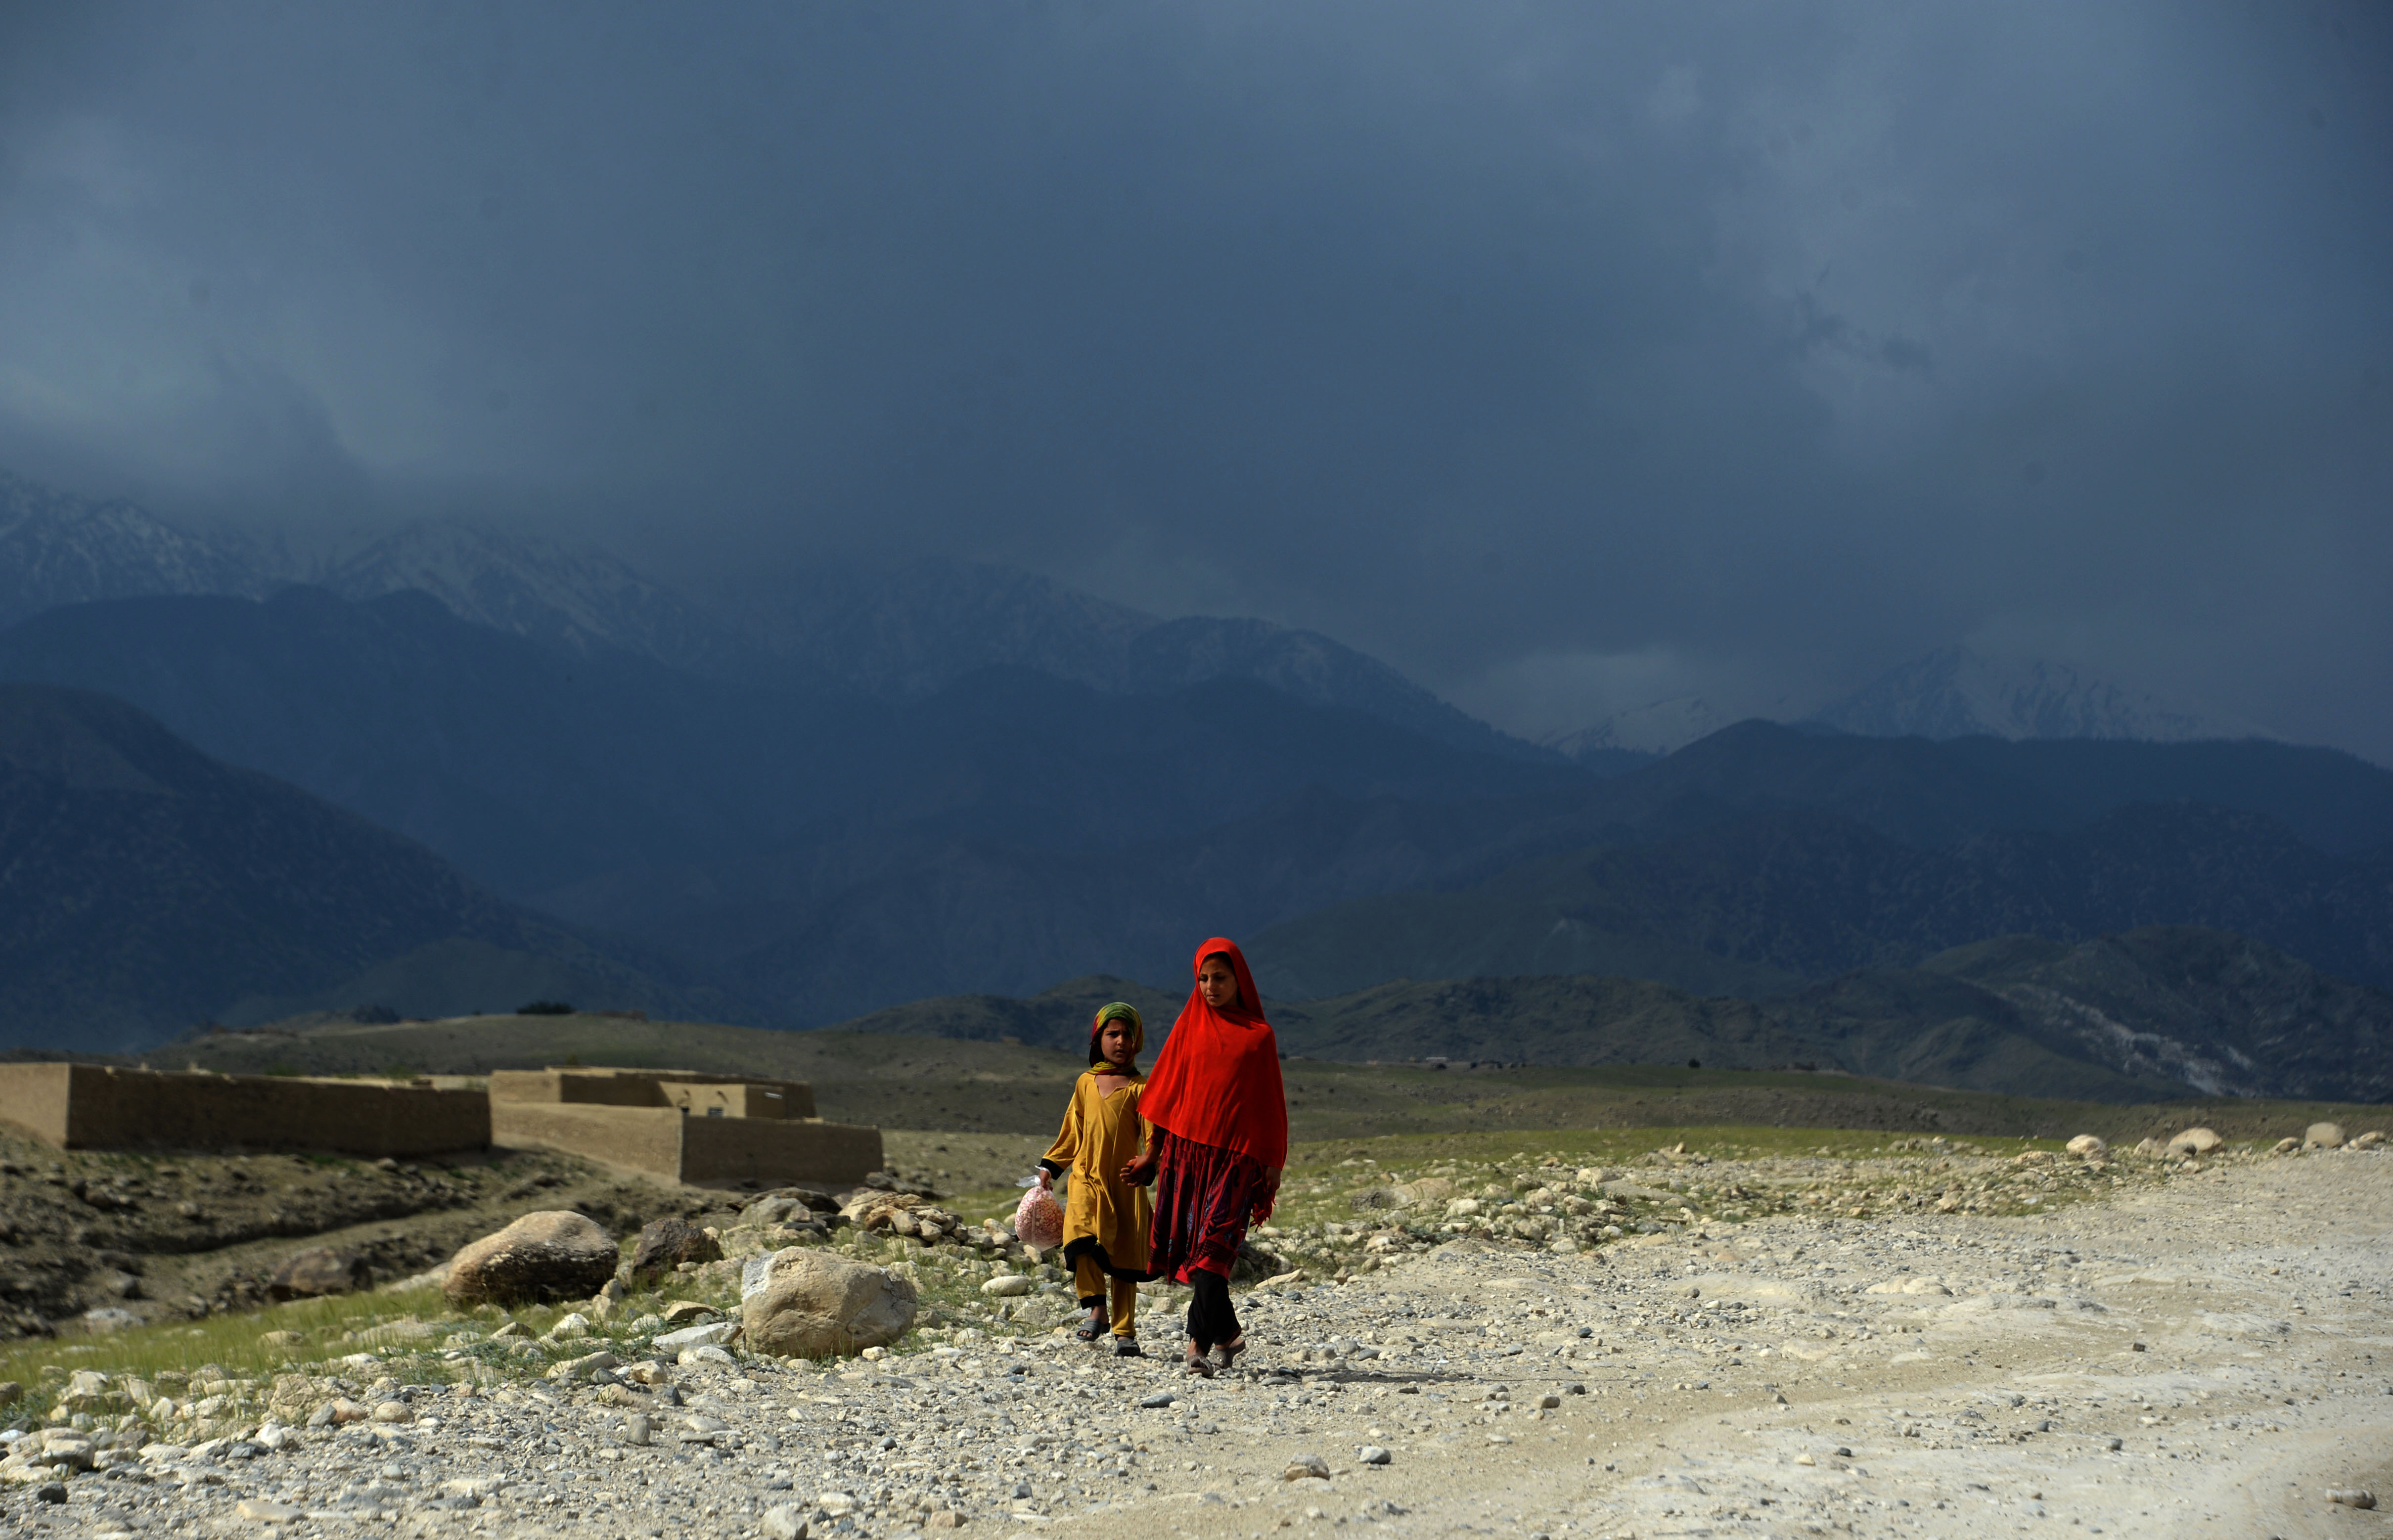 Life returns to normal in Nangarhar after eviction of ISIS